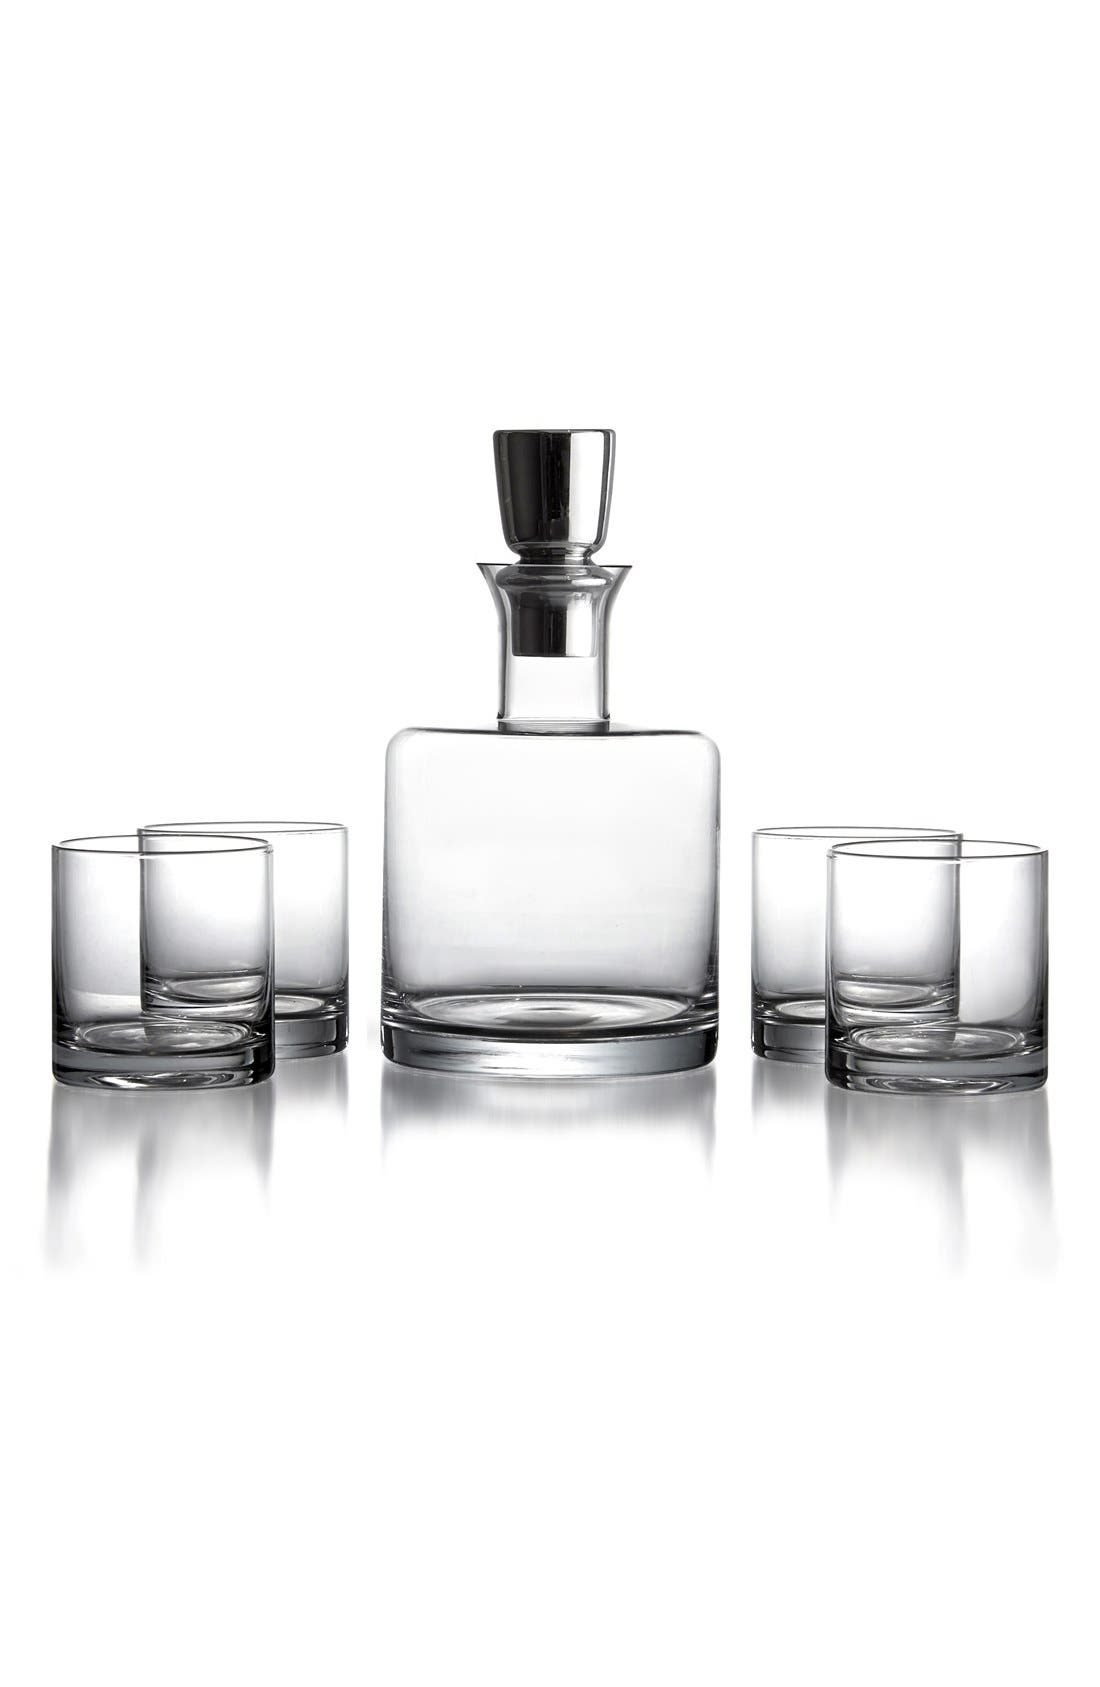 American Atelier 'Linus' Decanter & Whiskey Glasses (5-Piece Set)